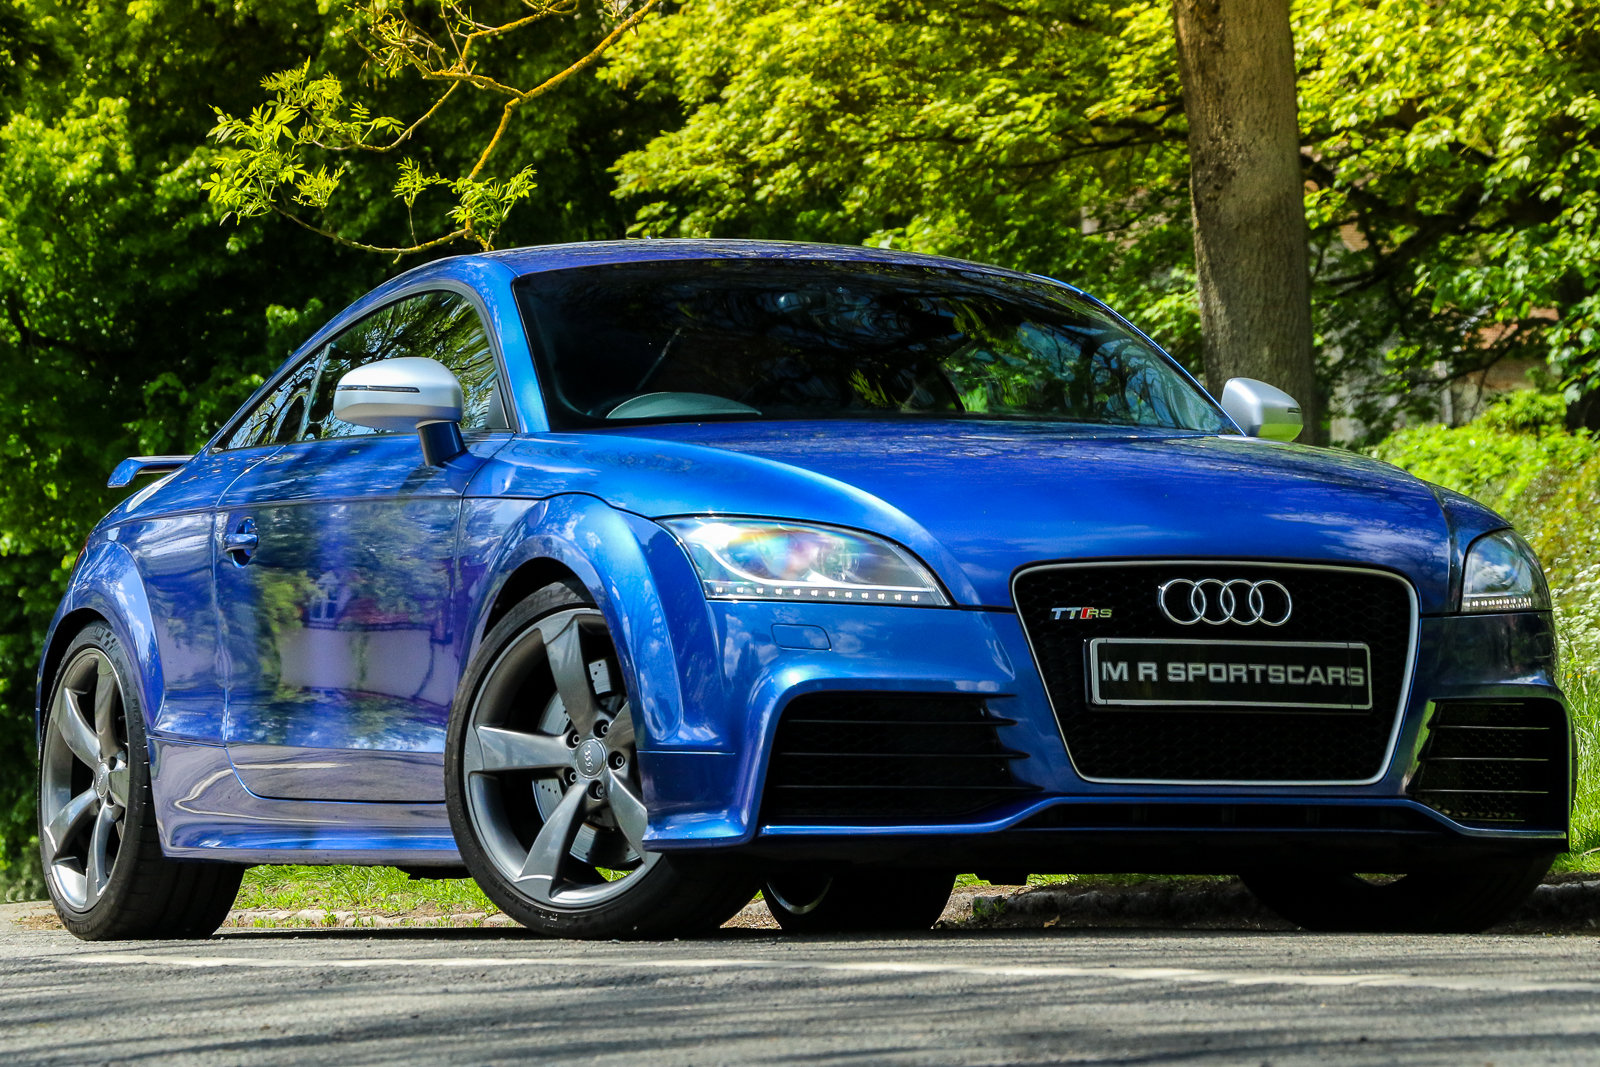 2009 Audi TTRS Sepang Blue Recaro Wingback Seats Manual For Sale (picture 1 of 6)